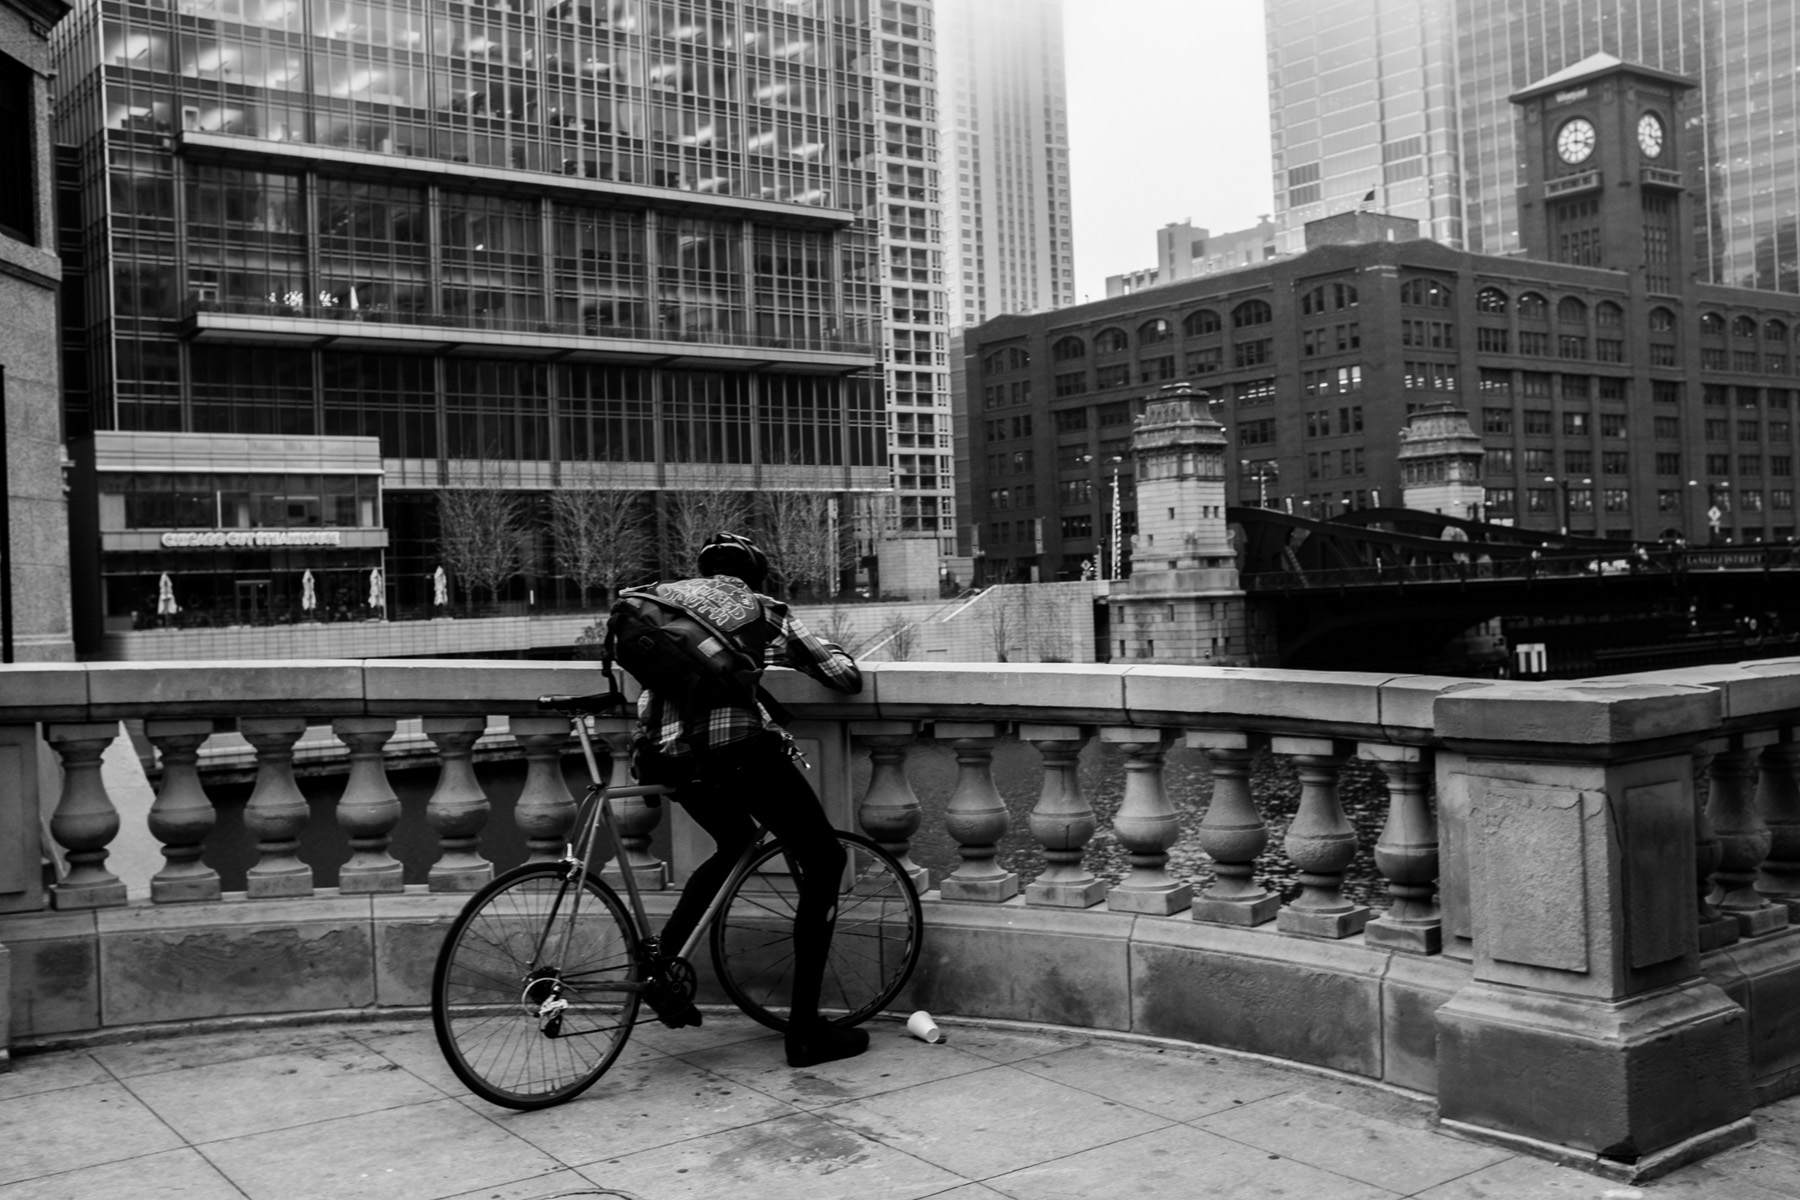 from my bike messenger series. A shot of a messenger sitting at the side of the Chicago river downtown Chicago taking a well deserved break to swipe through social media.